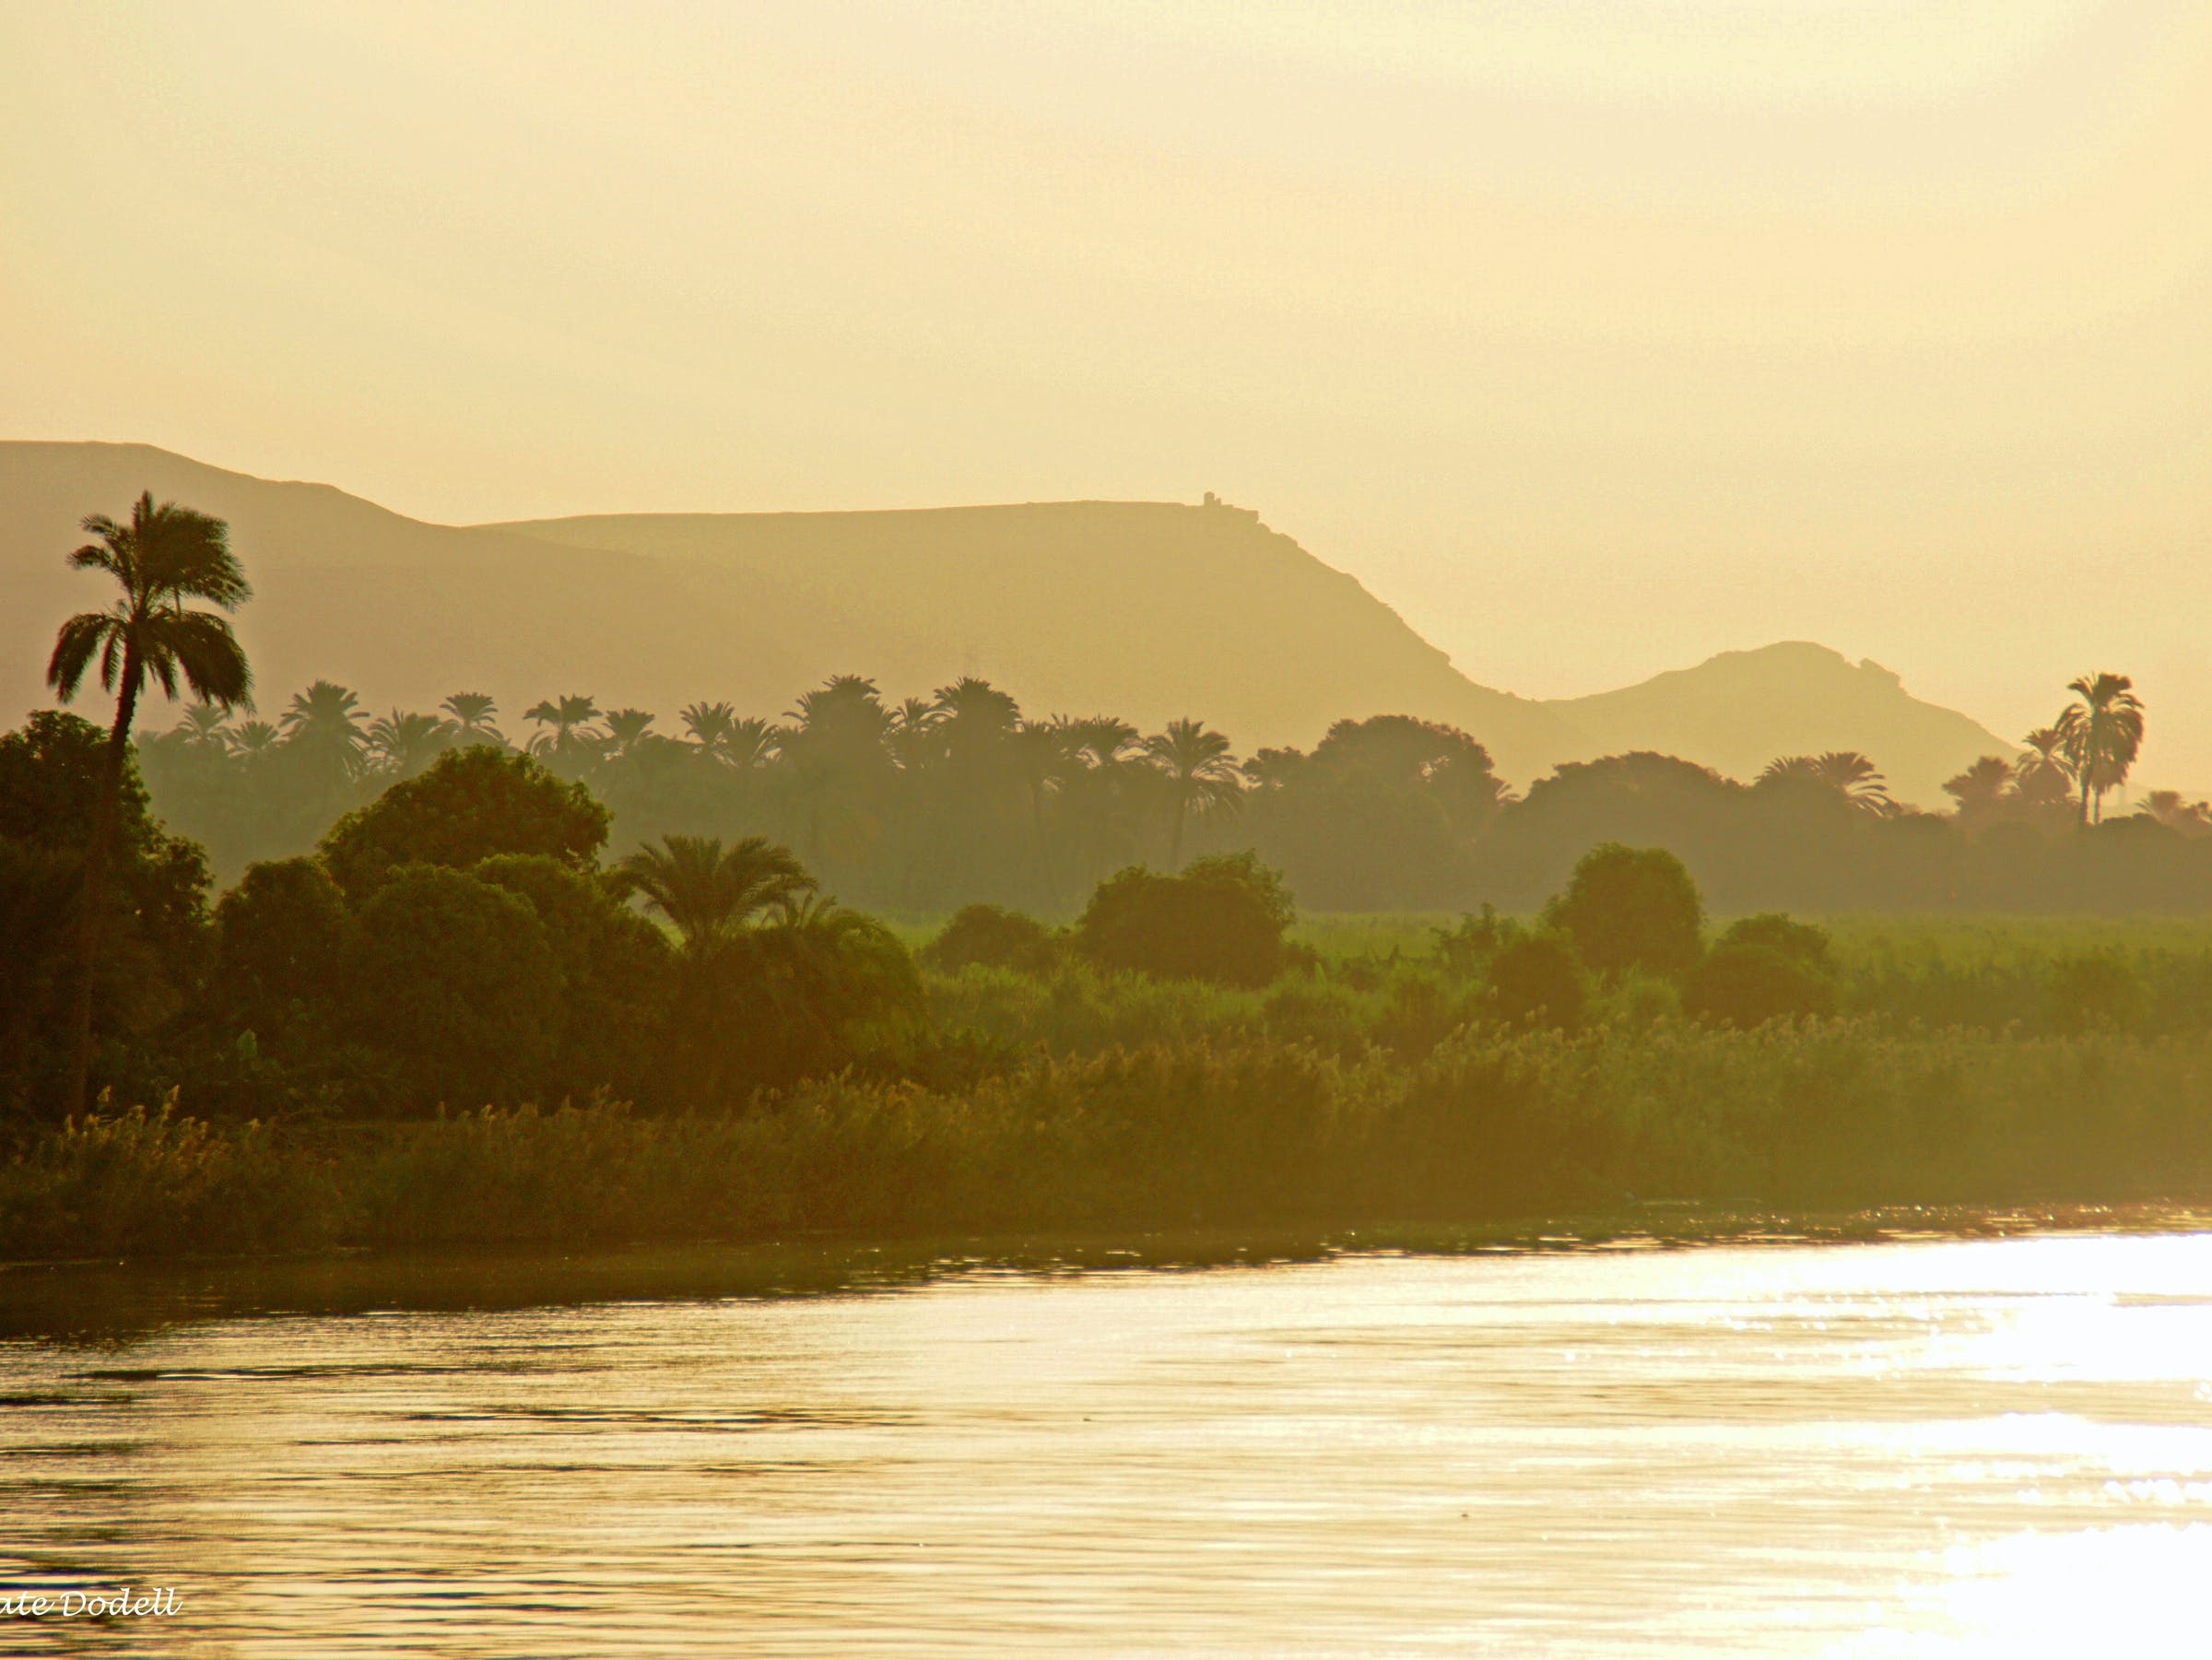 Morning atmosphere on the Nile